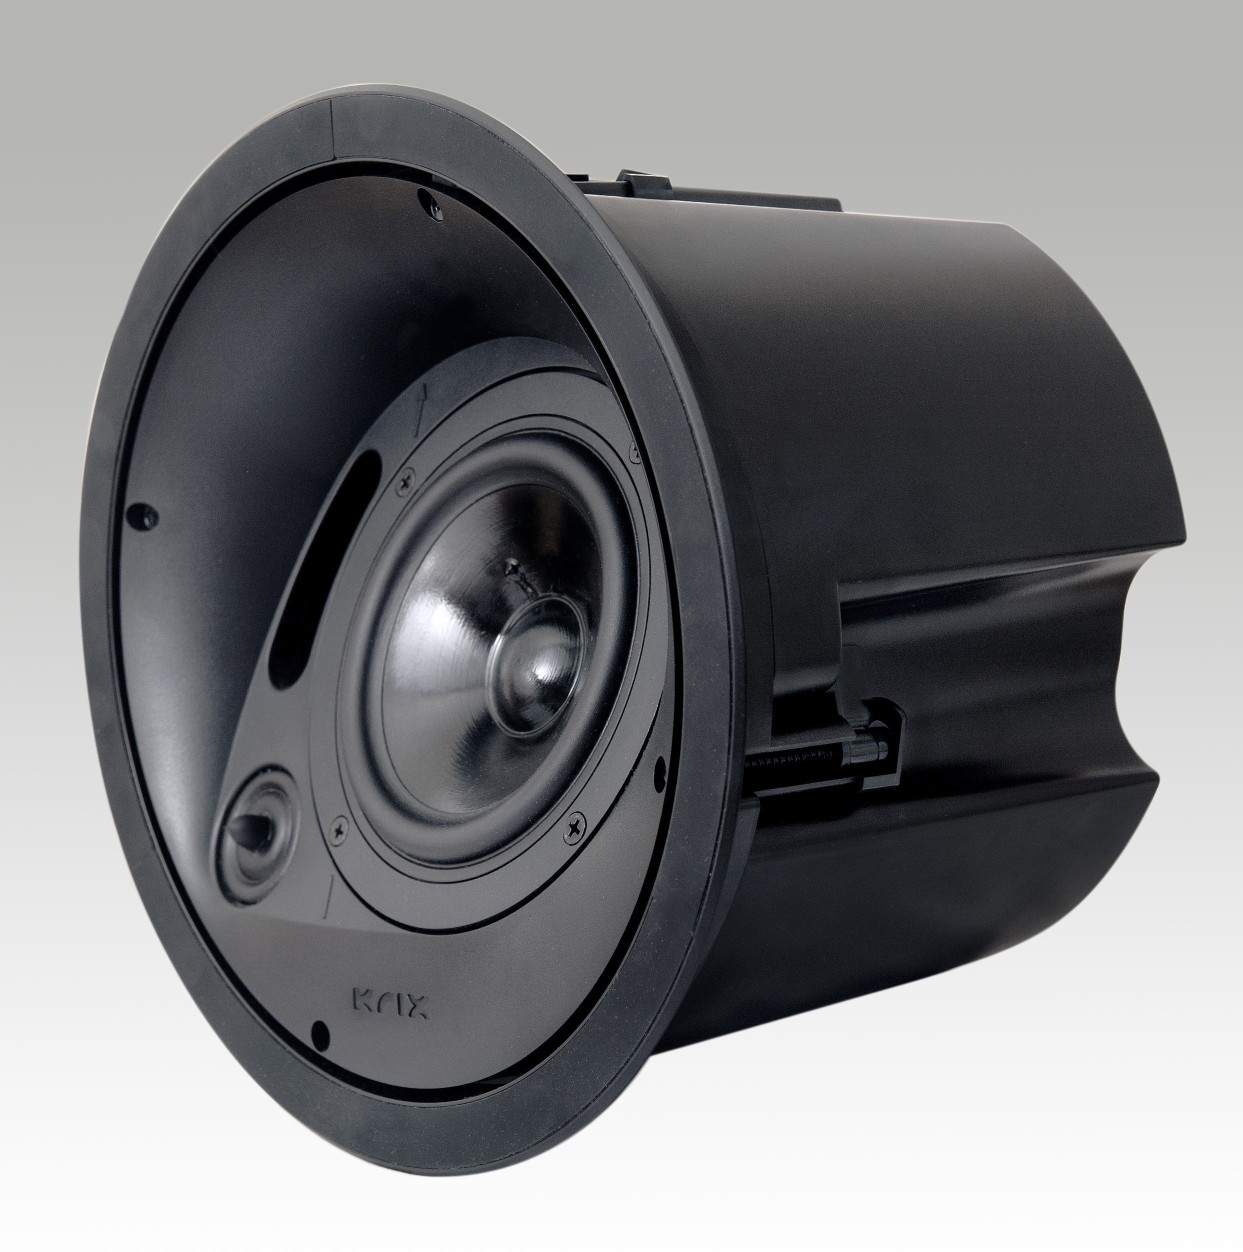 Krix Atmospherix A20 In Ceiling Speaker For Multi Room